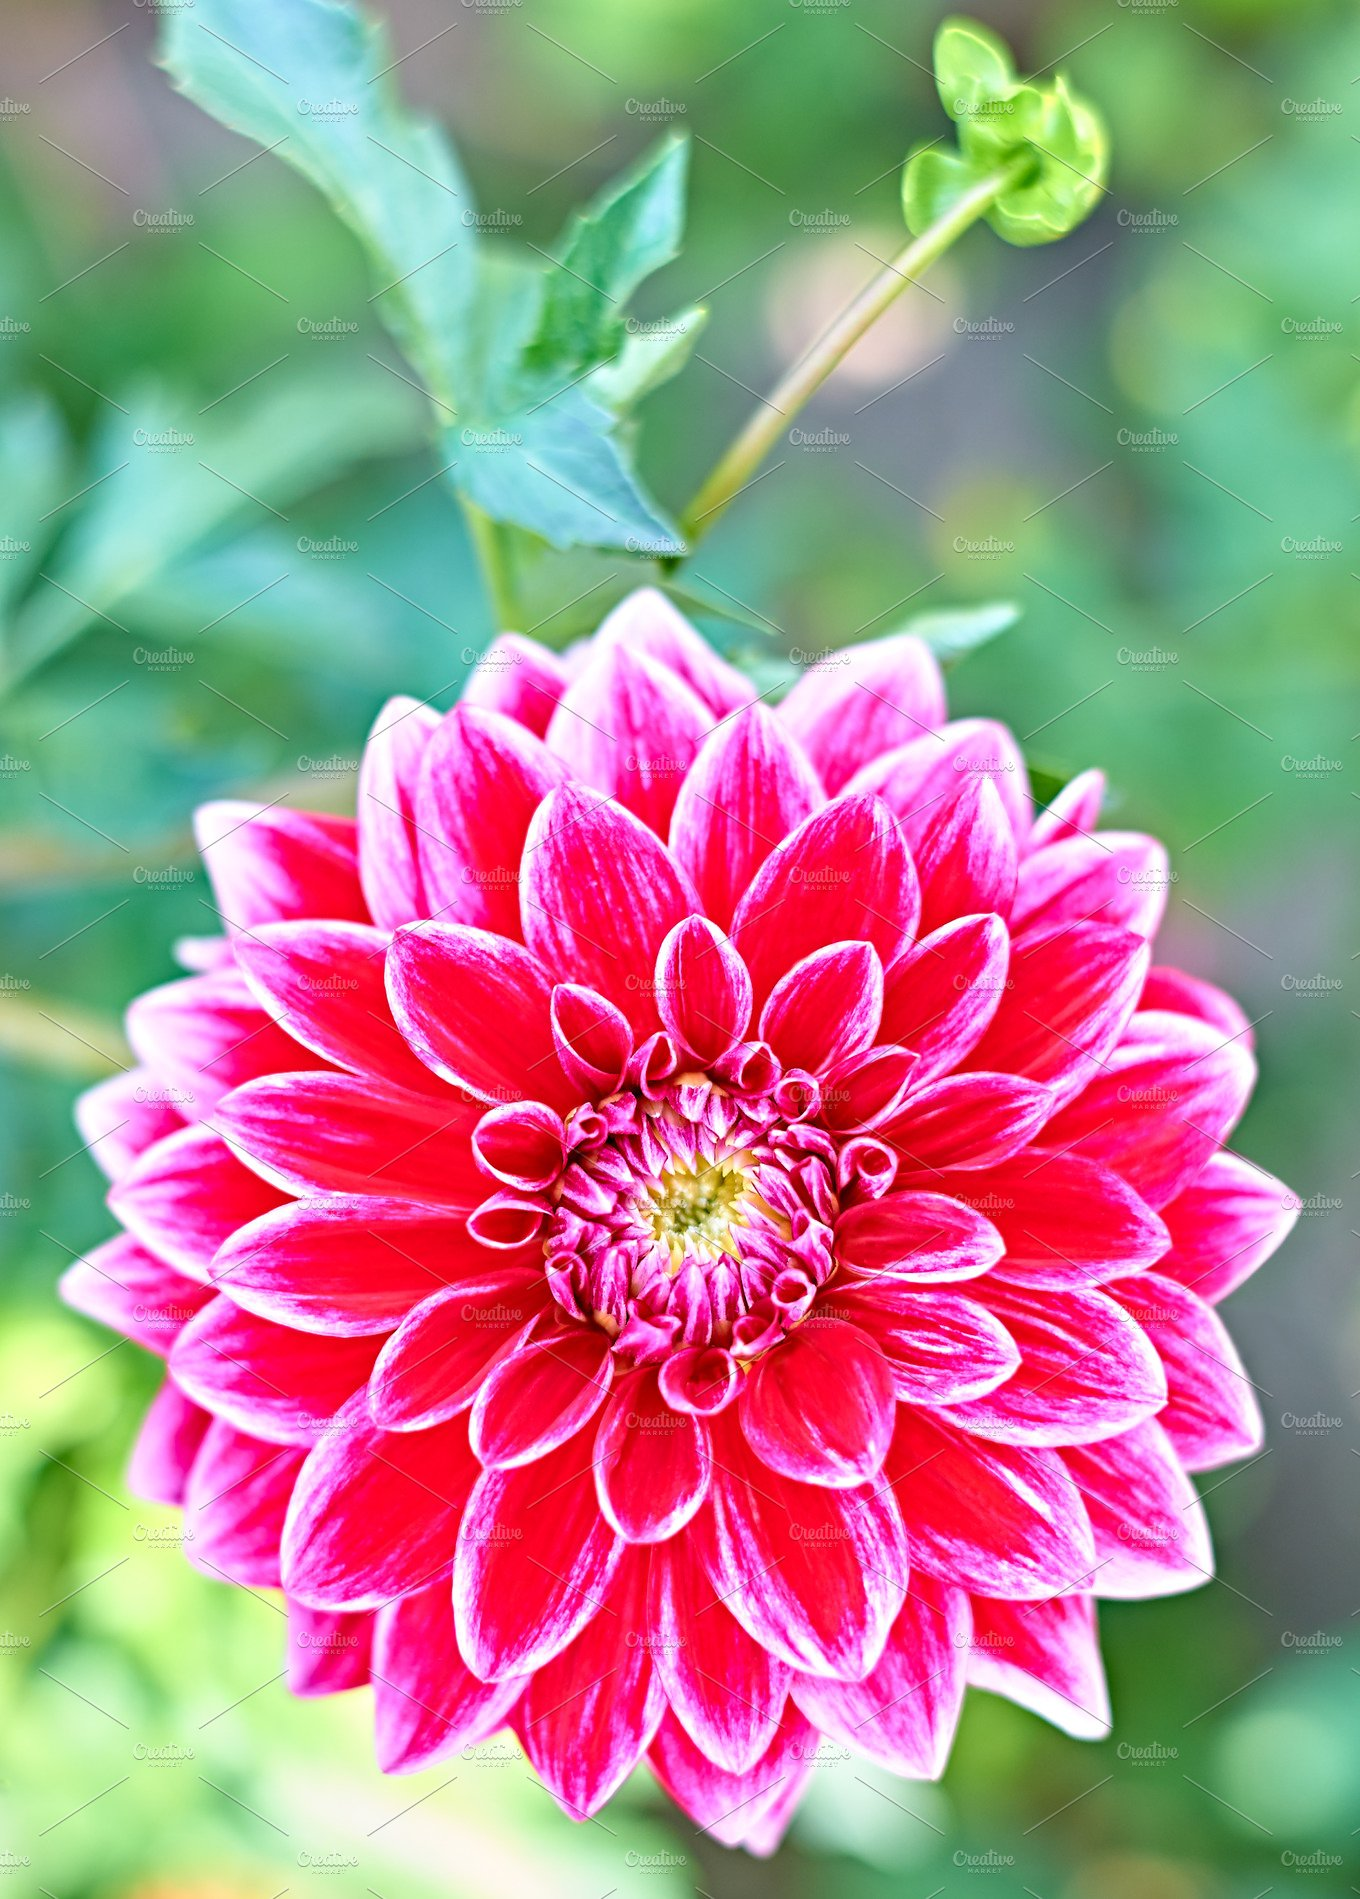 Dahlias with stem pink colored meadow flowers nature photos dahlias with stem pink colored meadow flowers nature photos creative market mightylinksfo